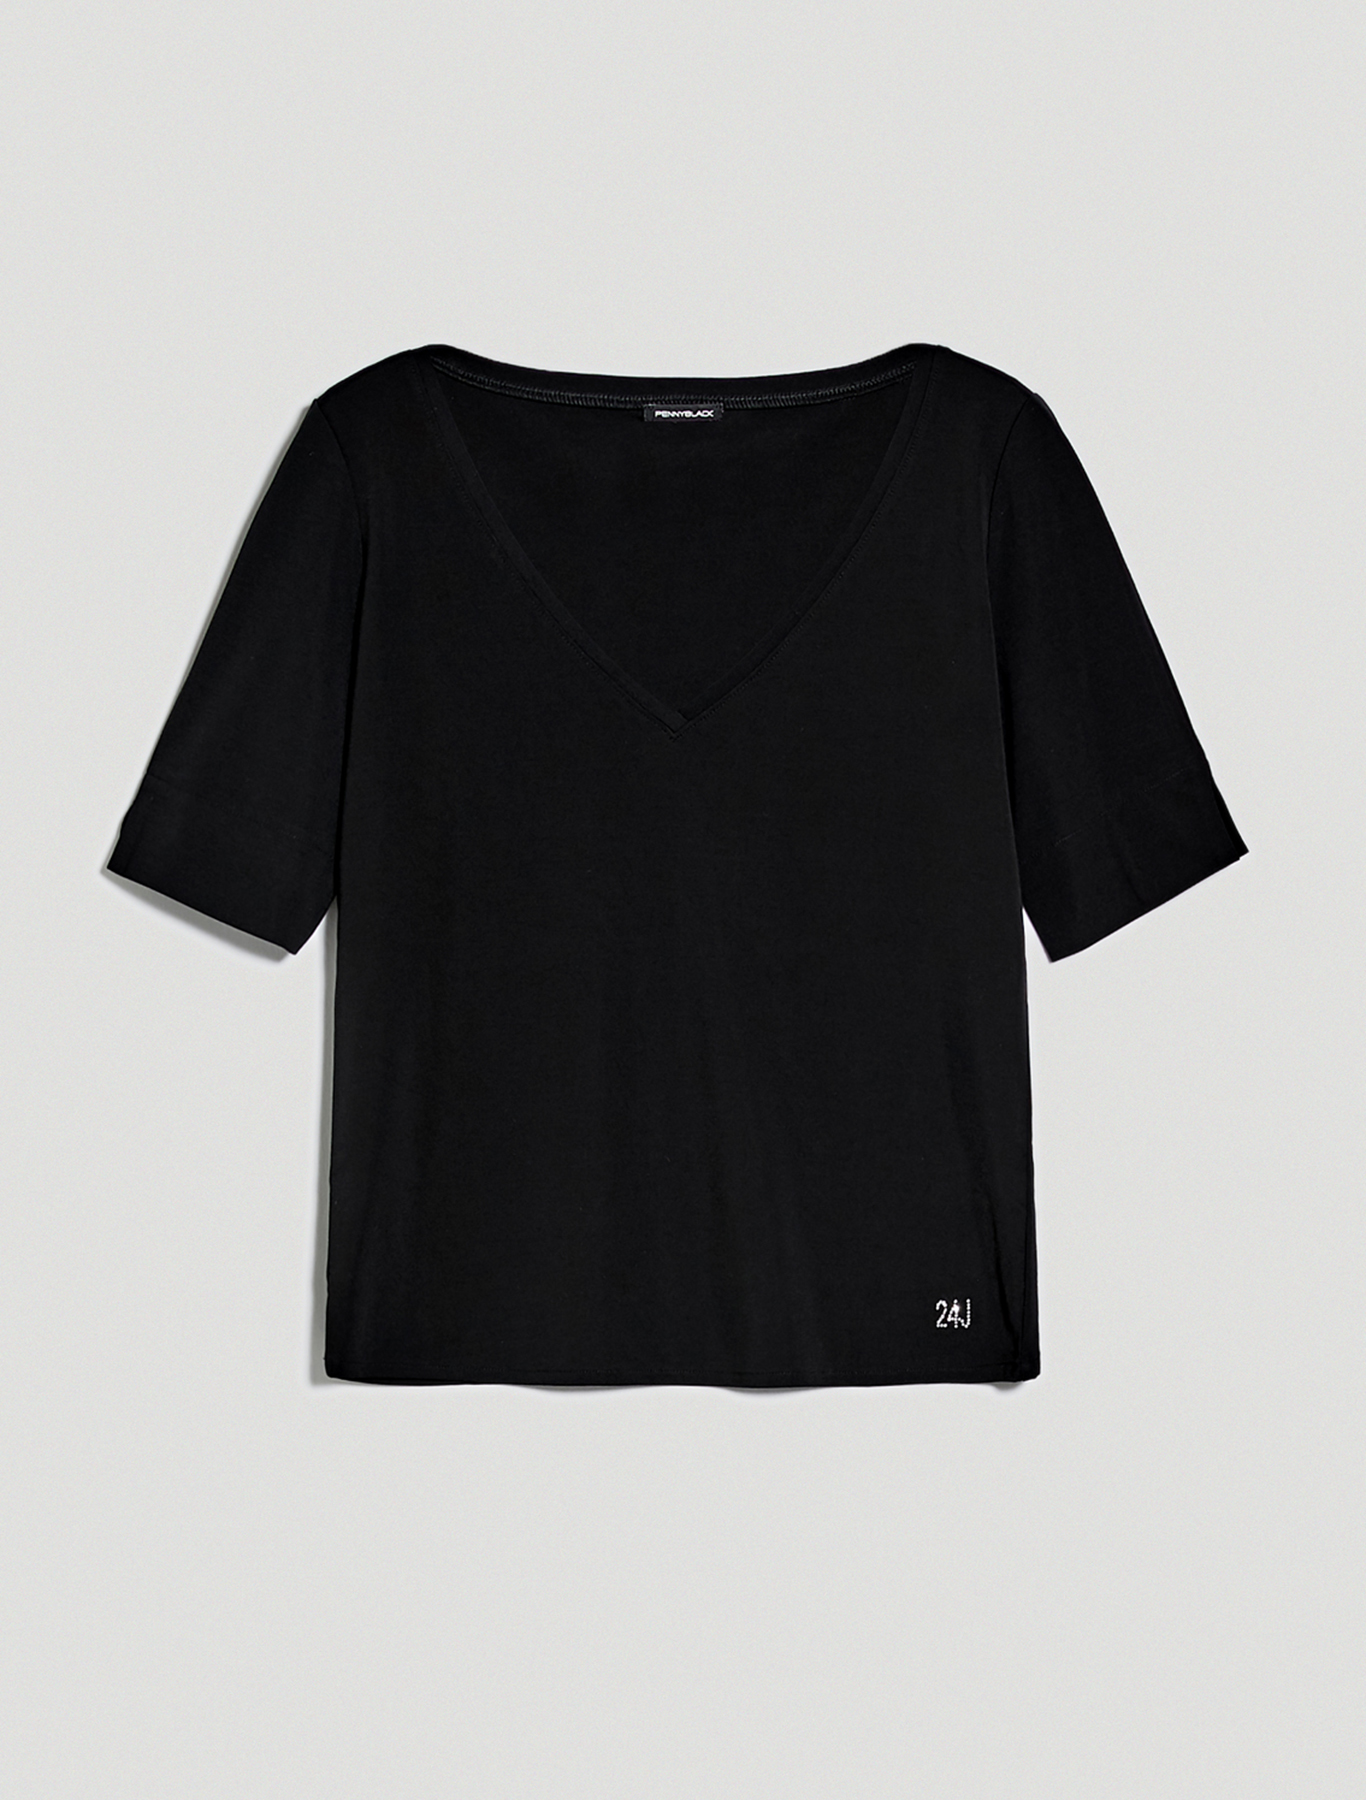 Flowing jersey T-shirt - black - pennyblack